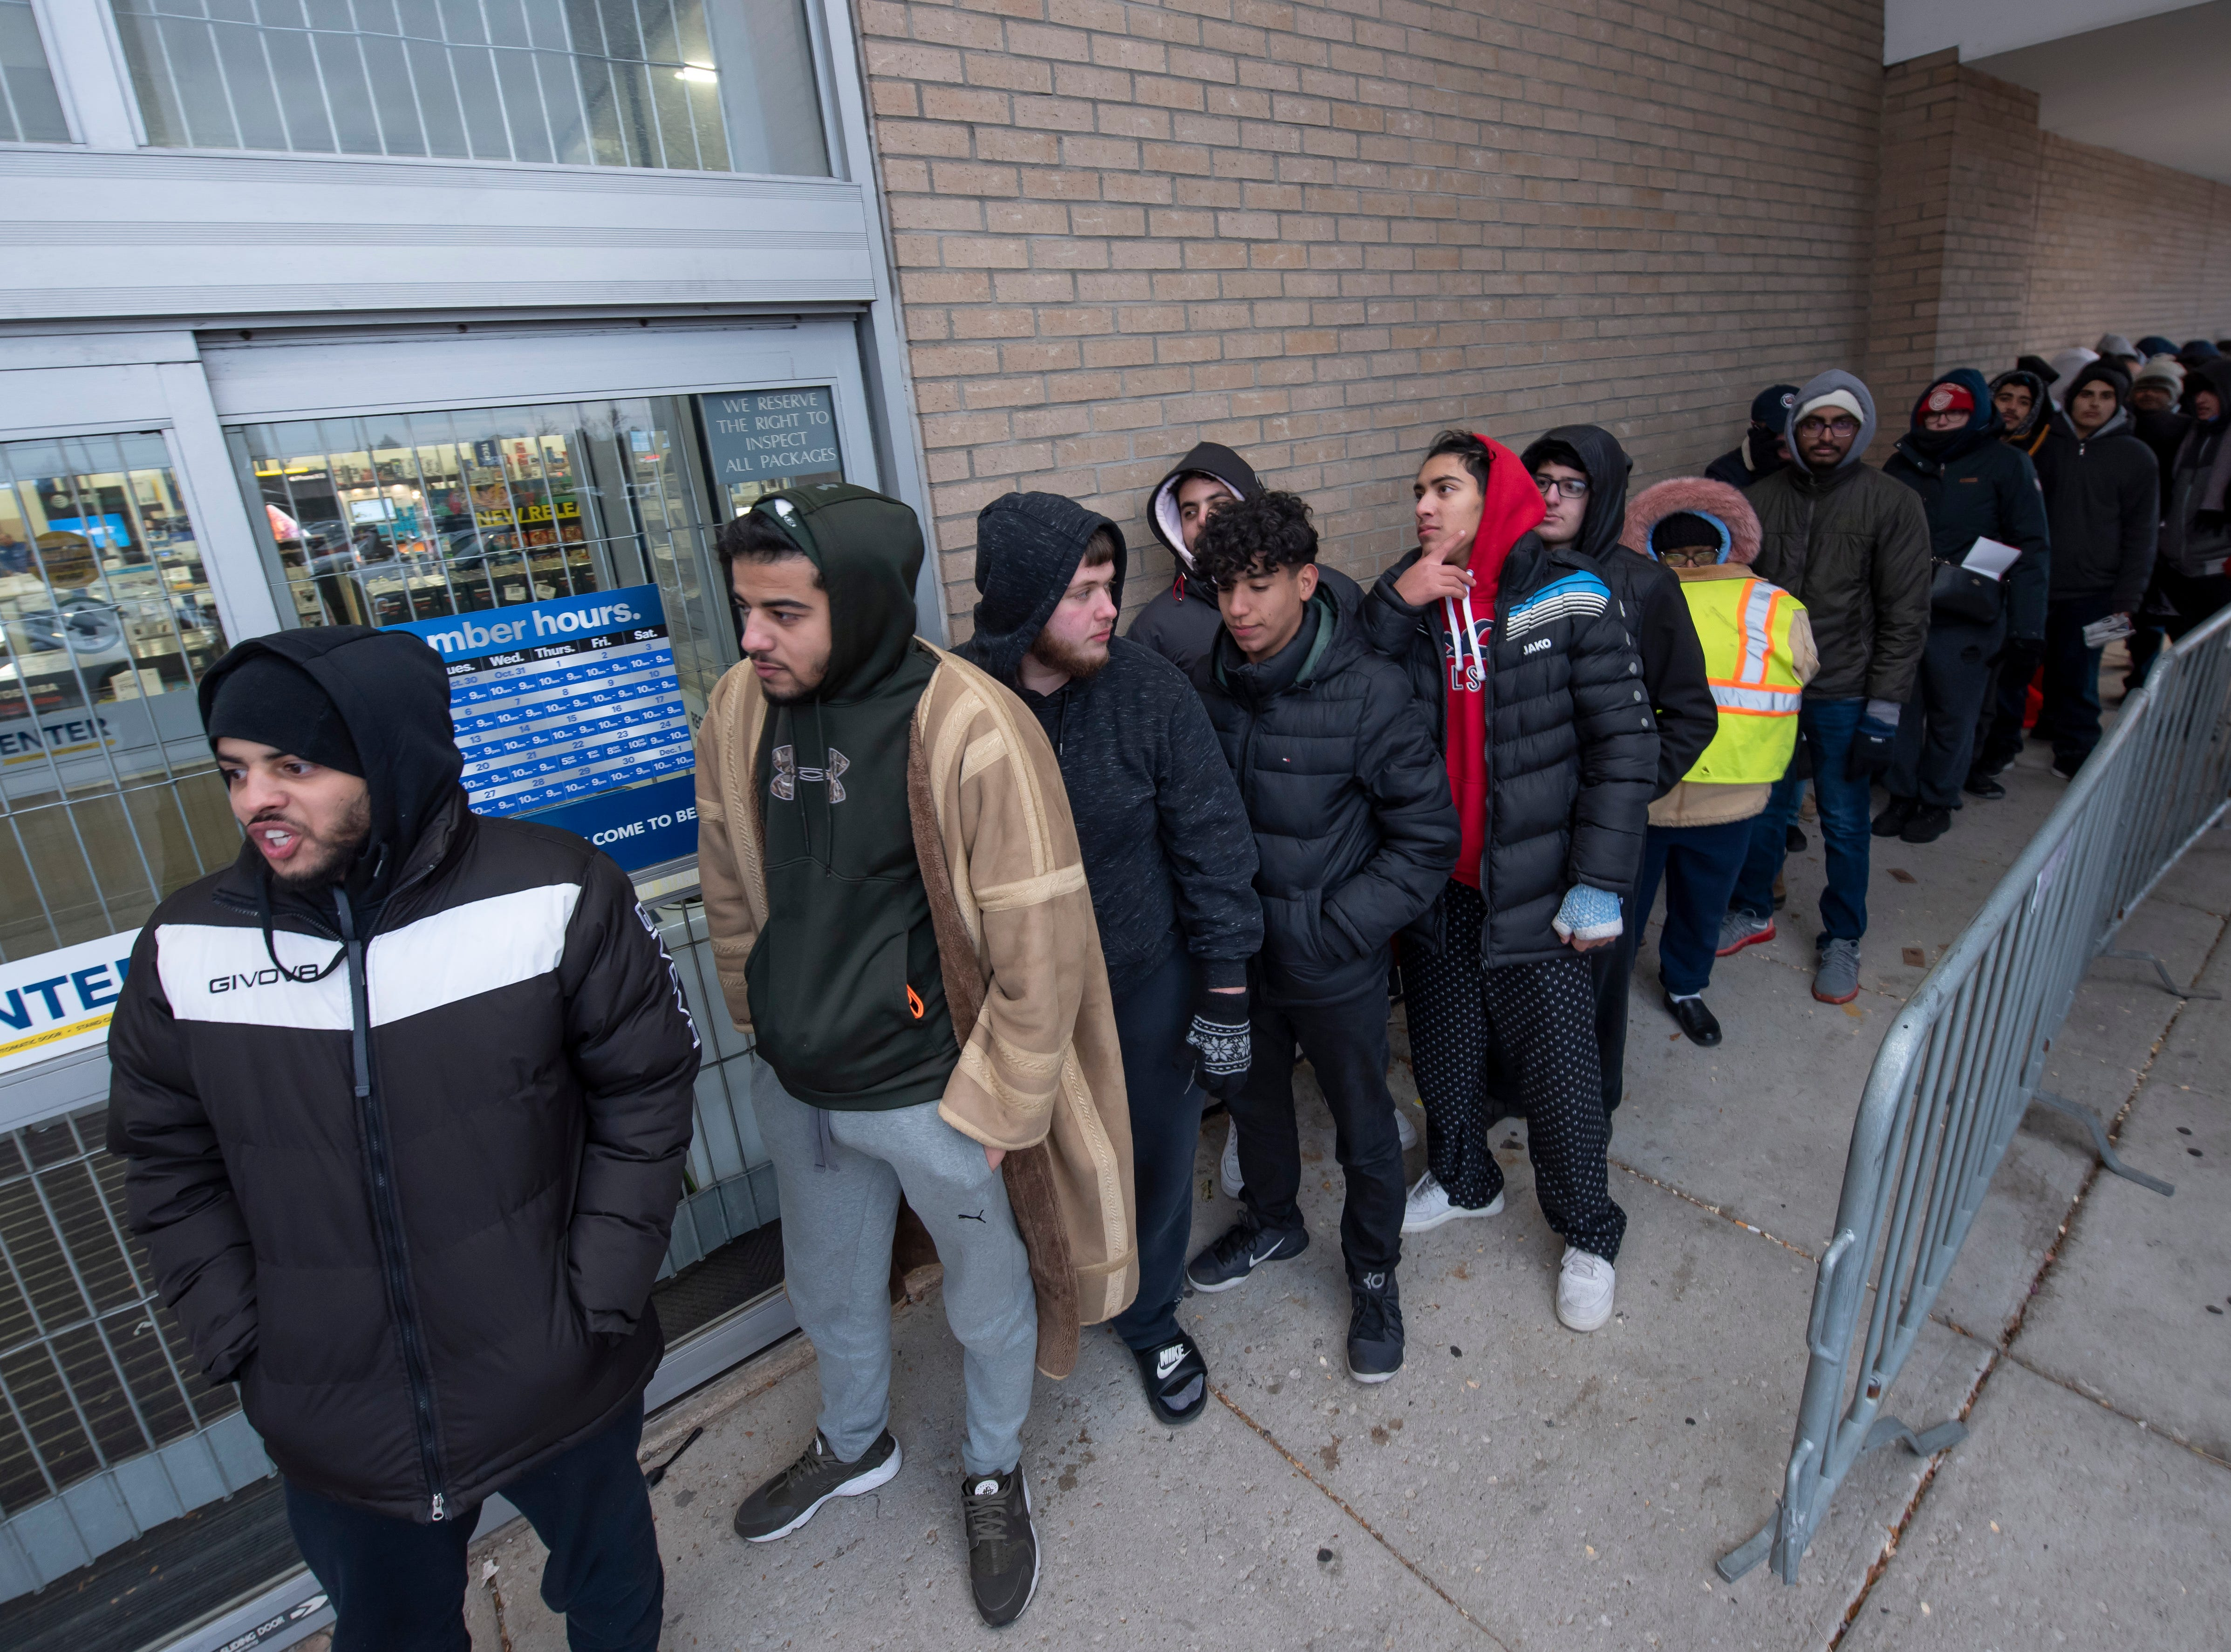 Shoppers wait outside in the cold to get into Best Buy in Dearborn.